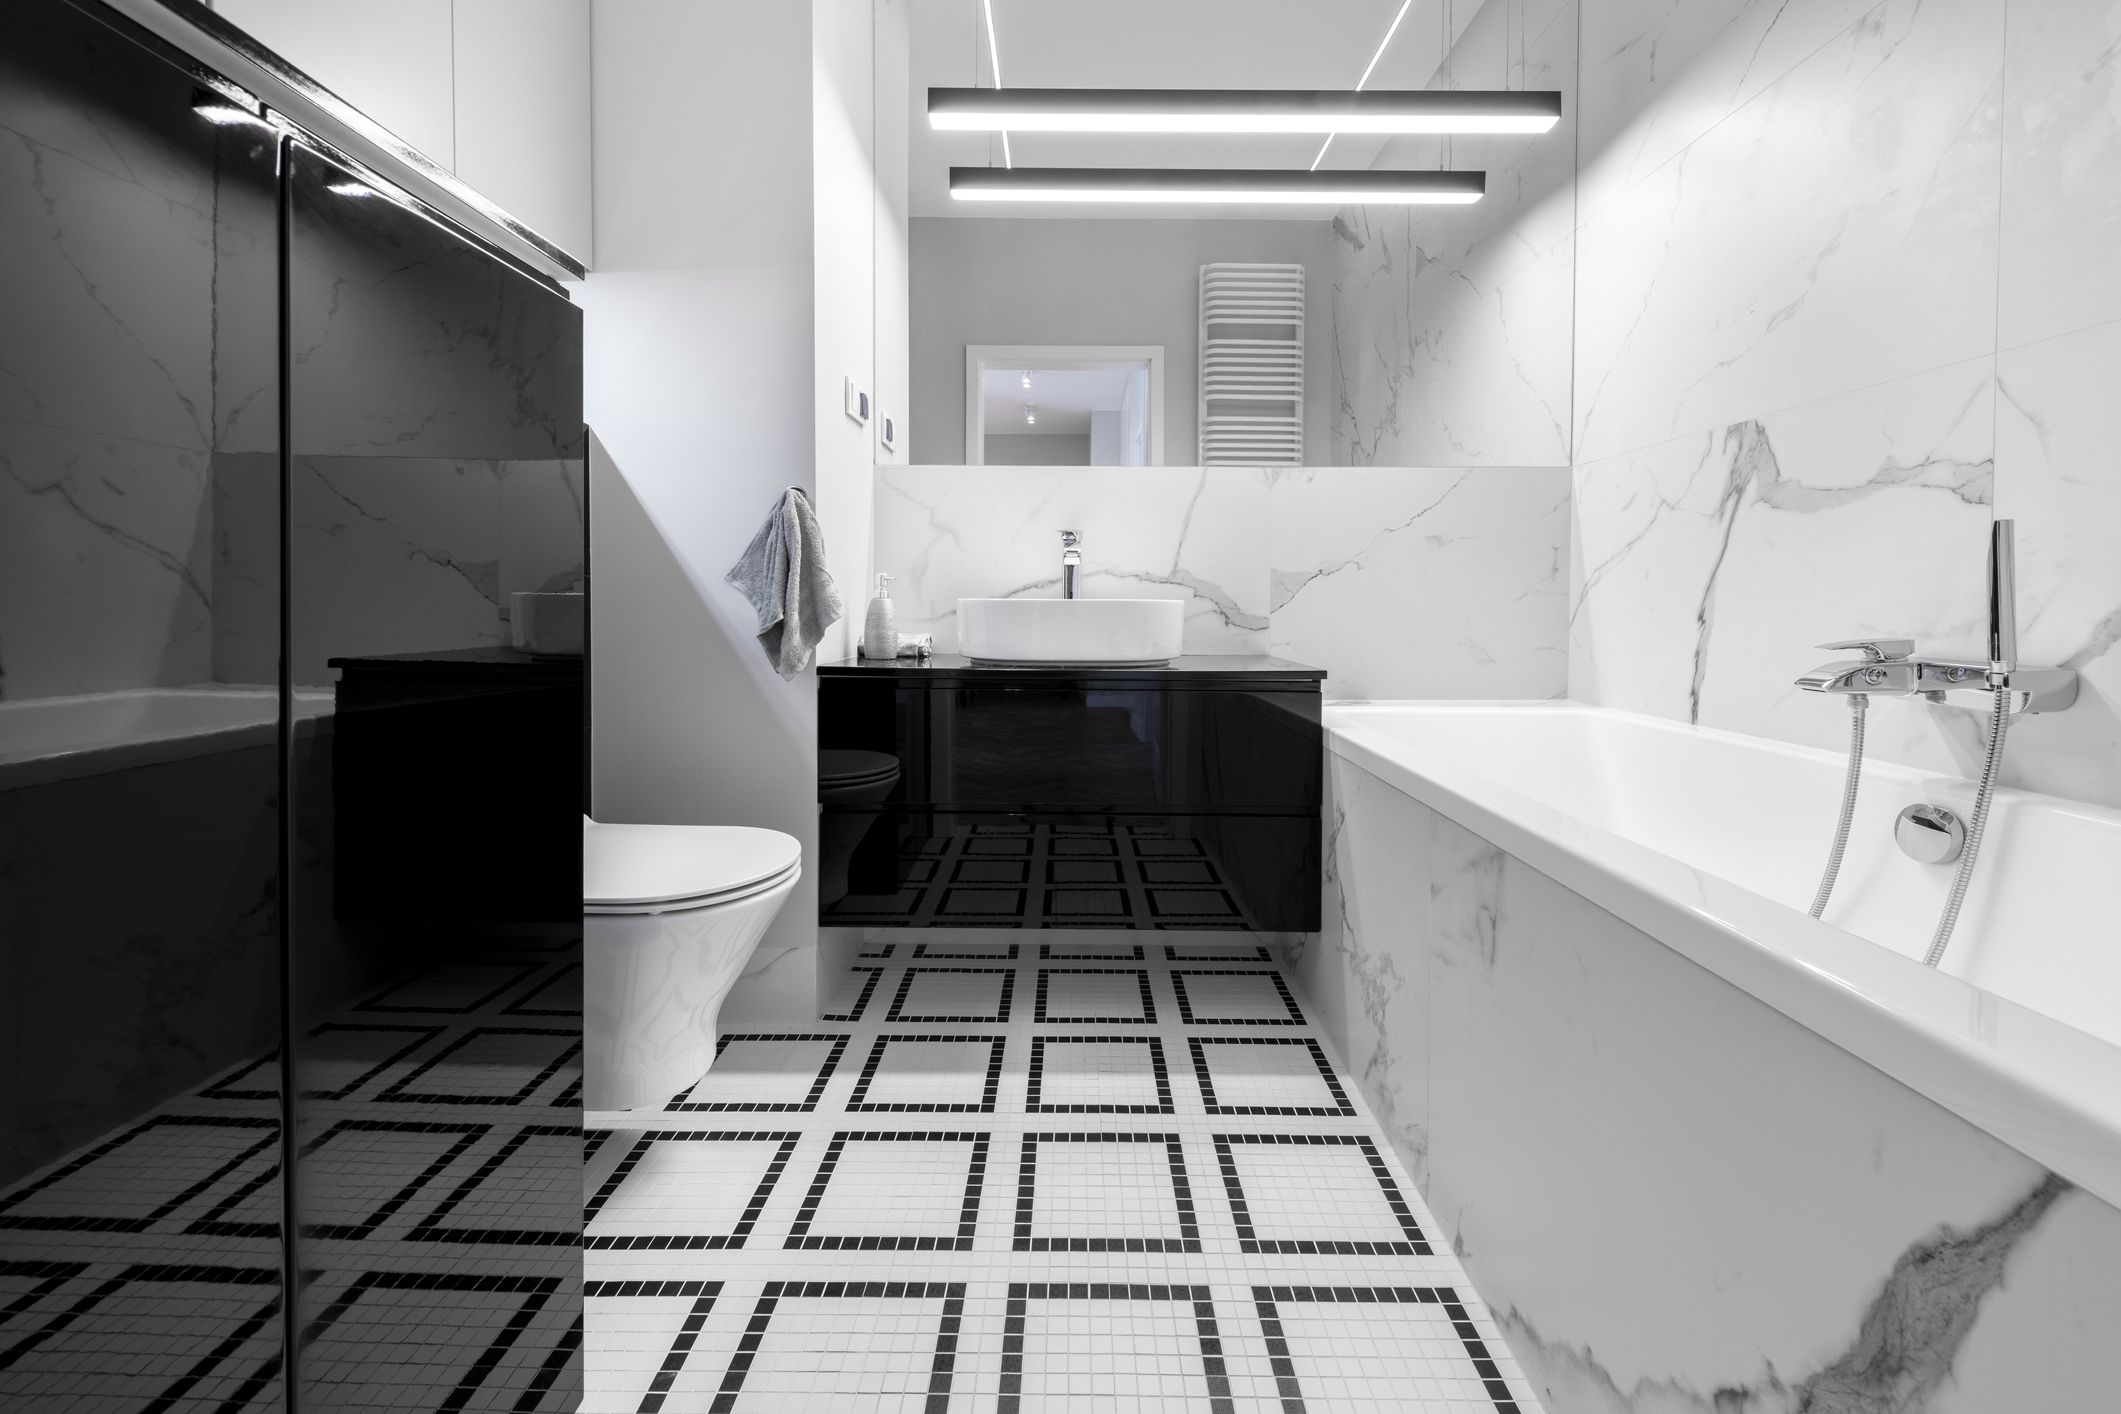 14 Stylish Tile Patterns For Your Floors